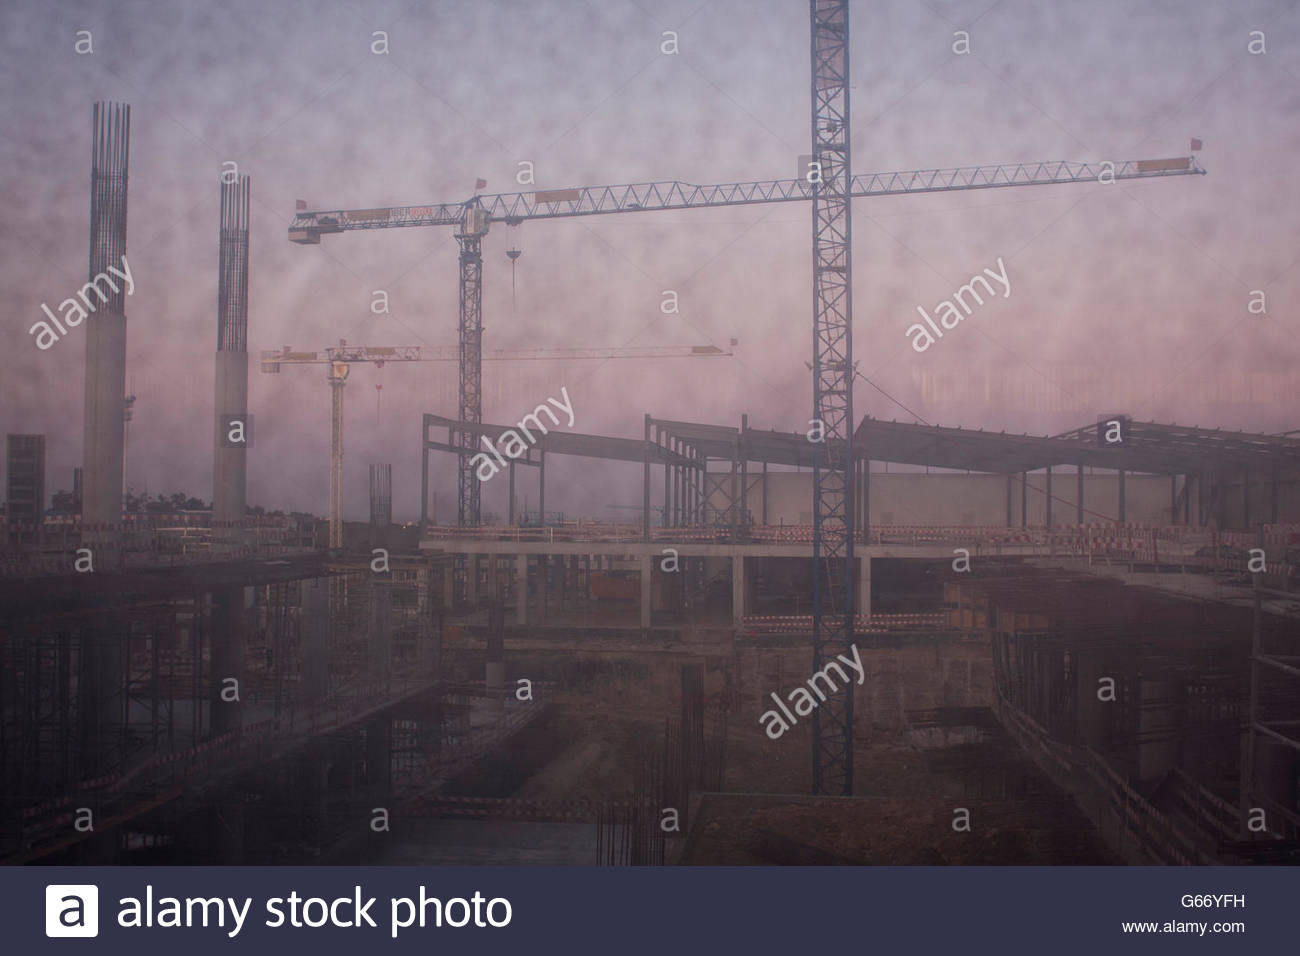 Obscure Cranes - Stock Image